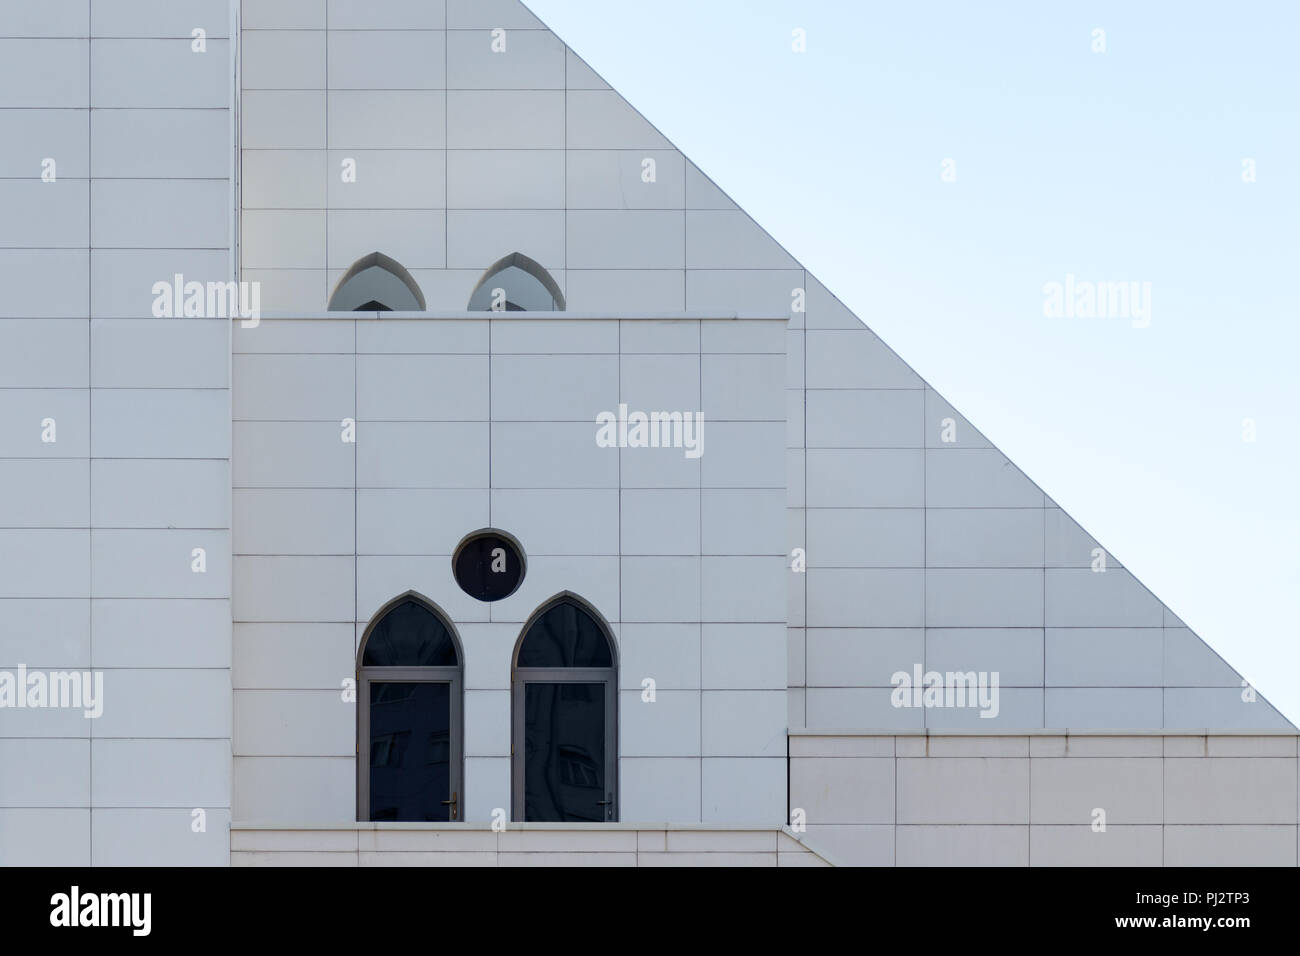 white wall with an arched and round windows detail of building exterior urban geometry copy space abstract minimal style architecture background PJ2TP3